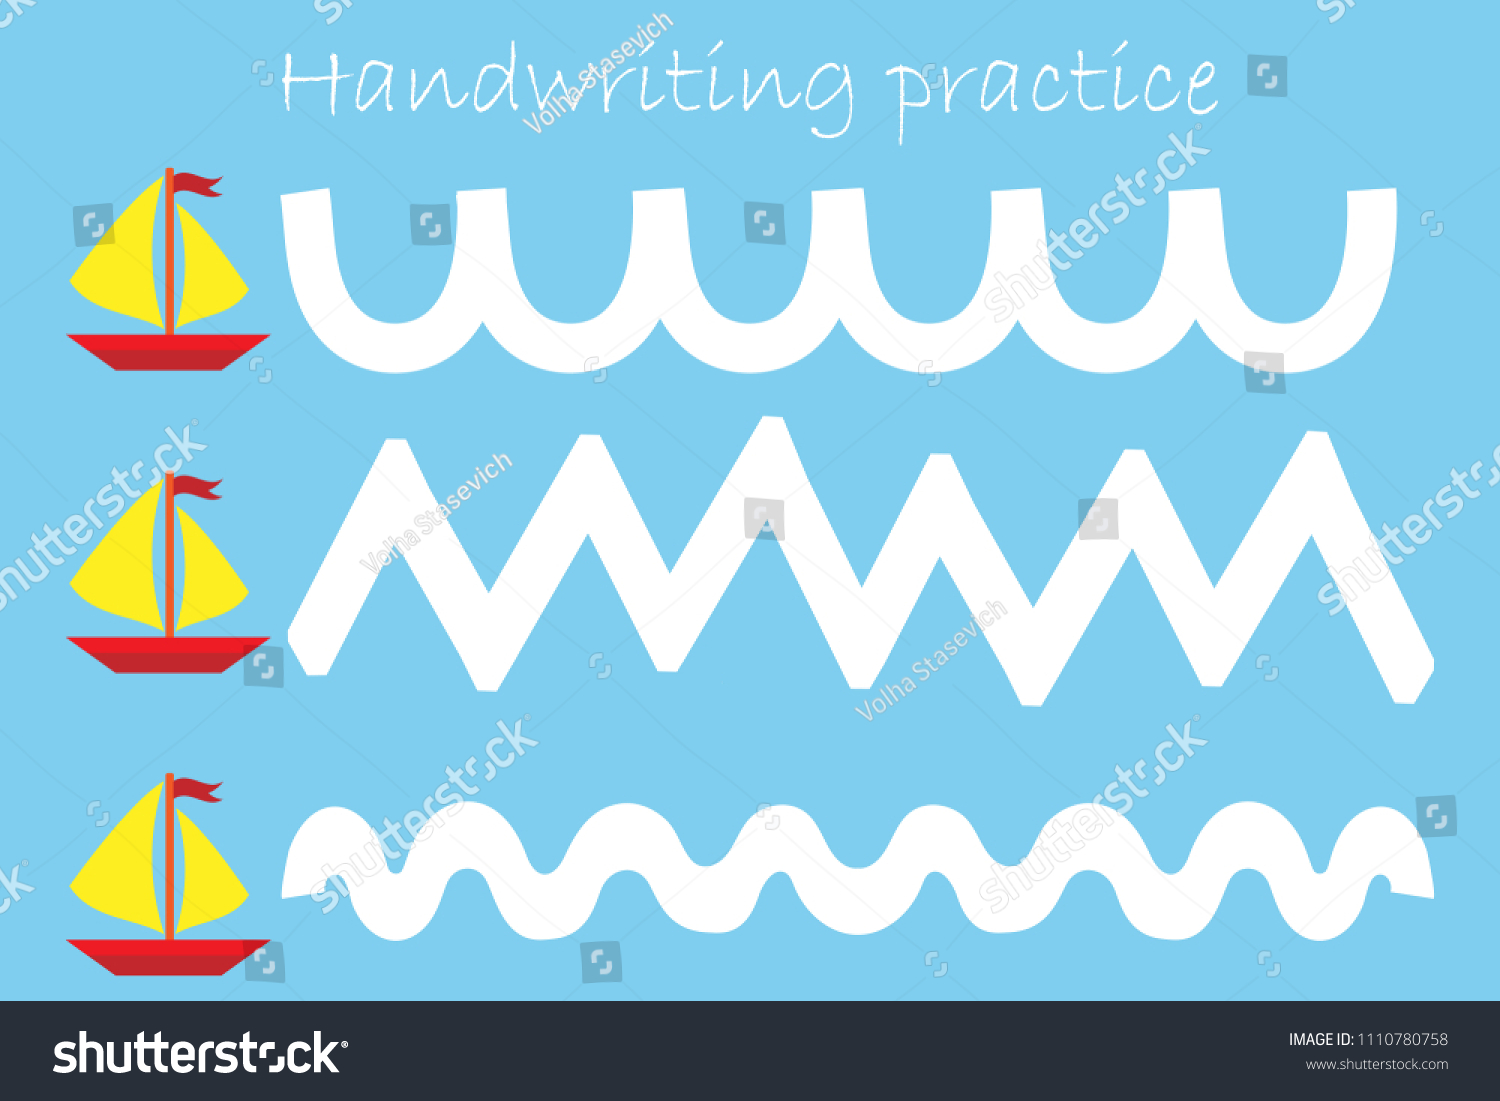 Draw Track Ships Handwriting Practice Sheet Stock Vector 1110780758 ...